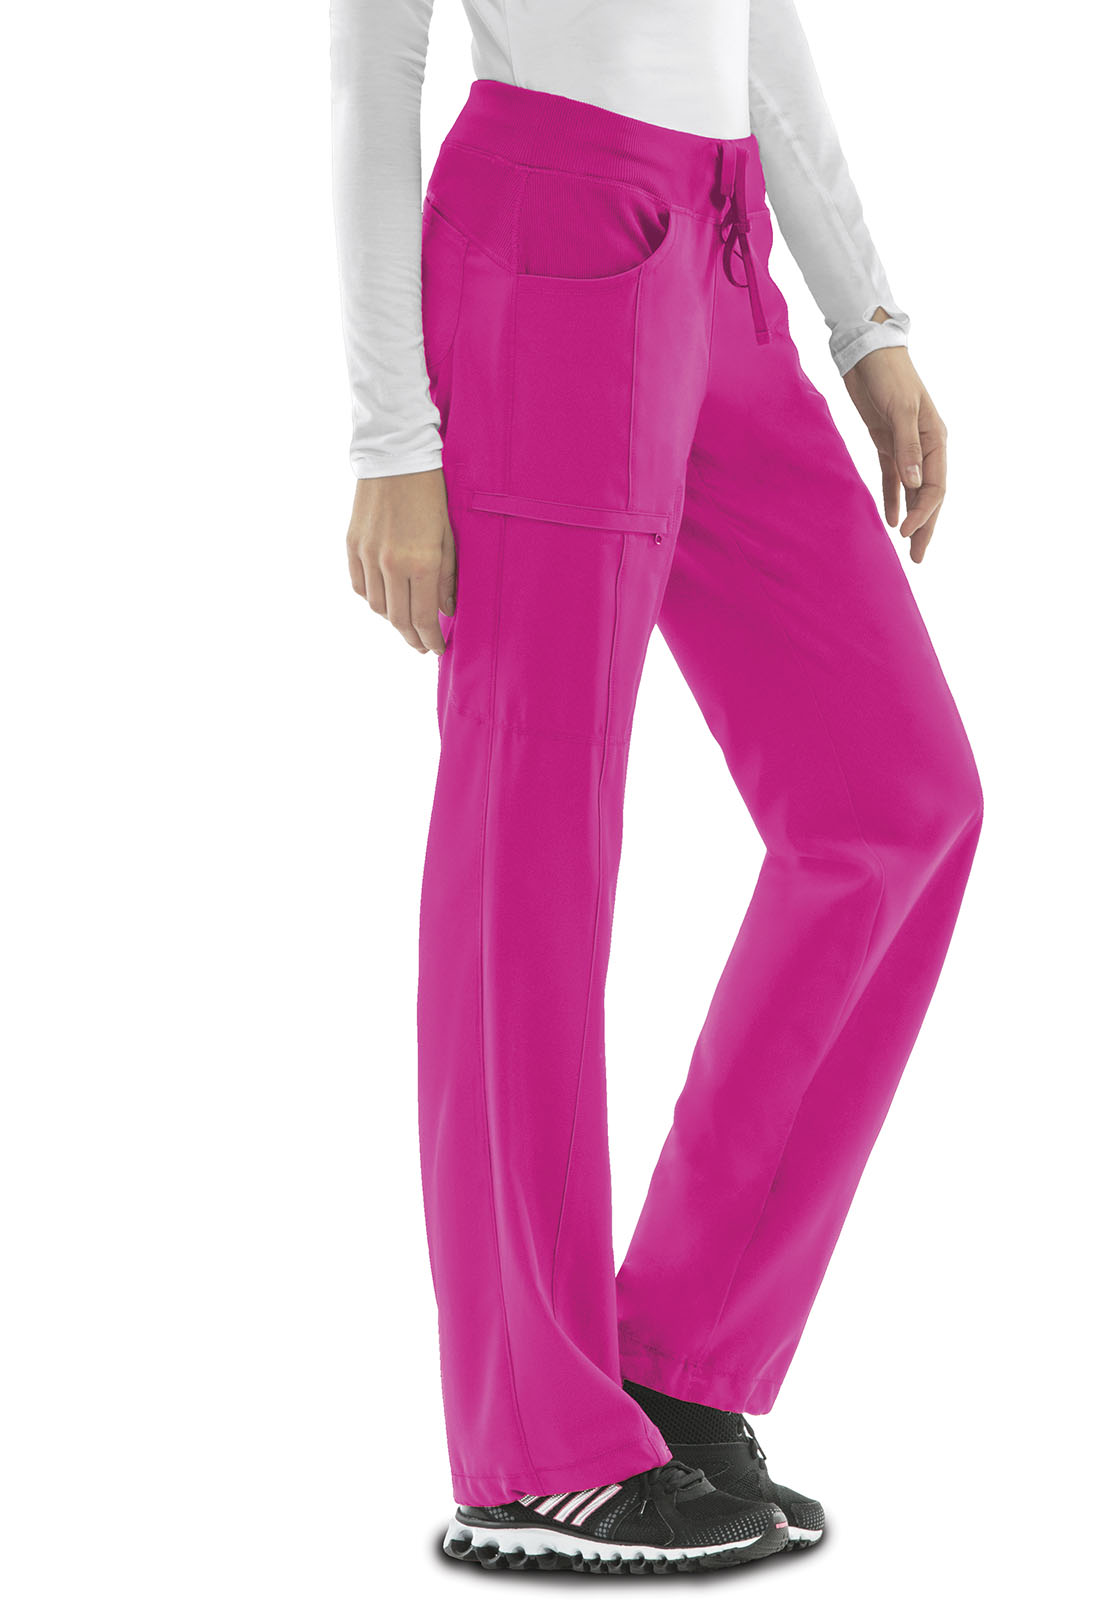 31e1ad3139f Infinity Low Rise Straight Leg Drawstring Pant in Carmine Pink 1123A ...